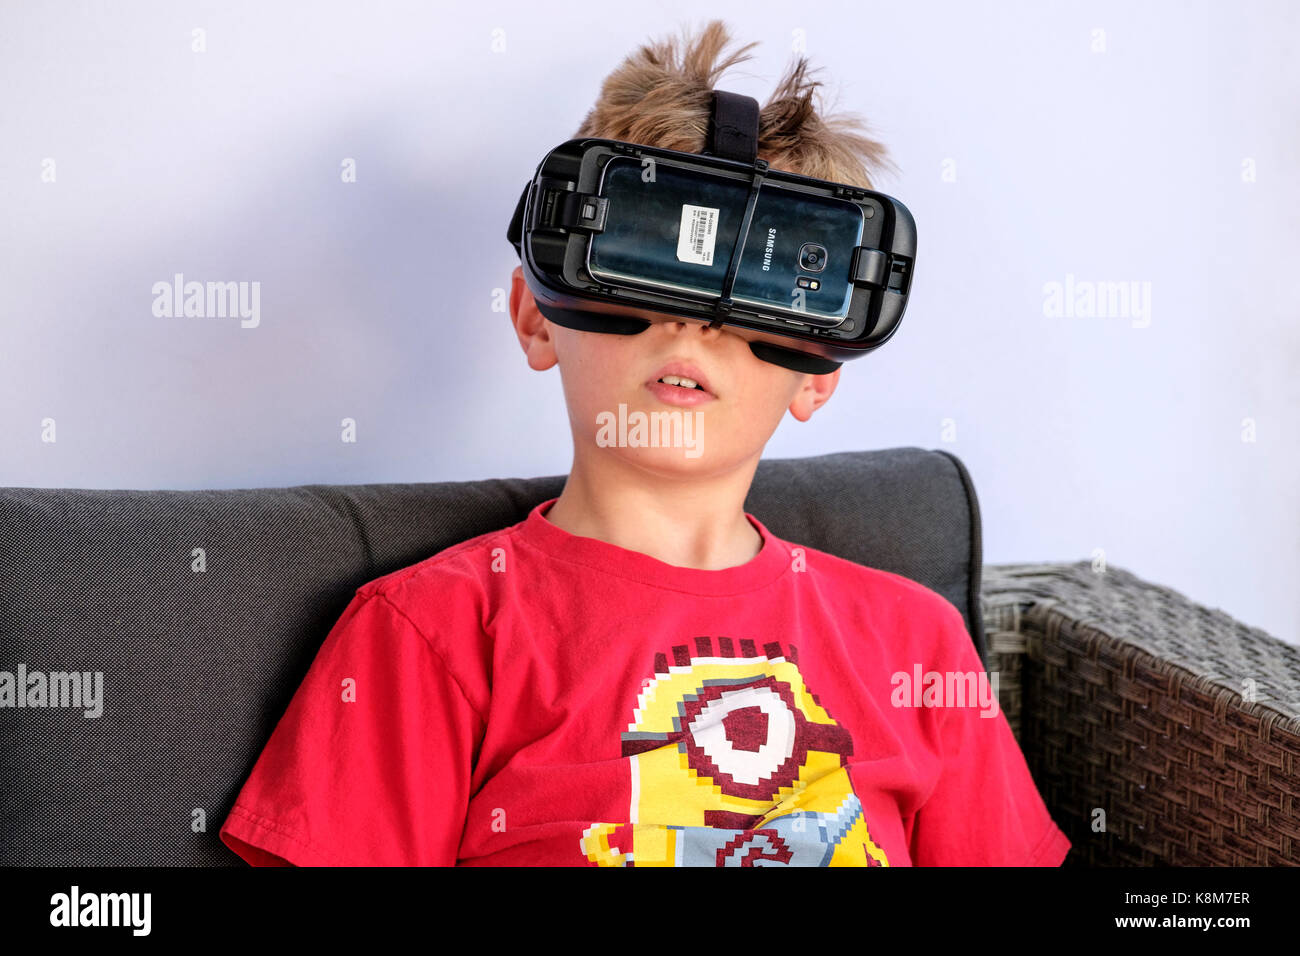 Young boy wearing Oculus Gear VR headset, virtual reality